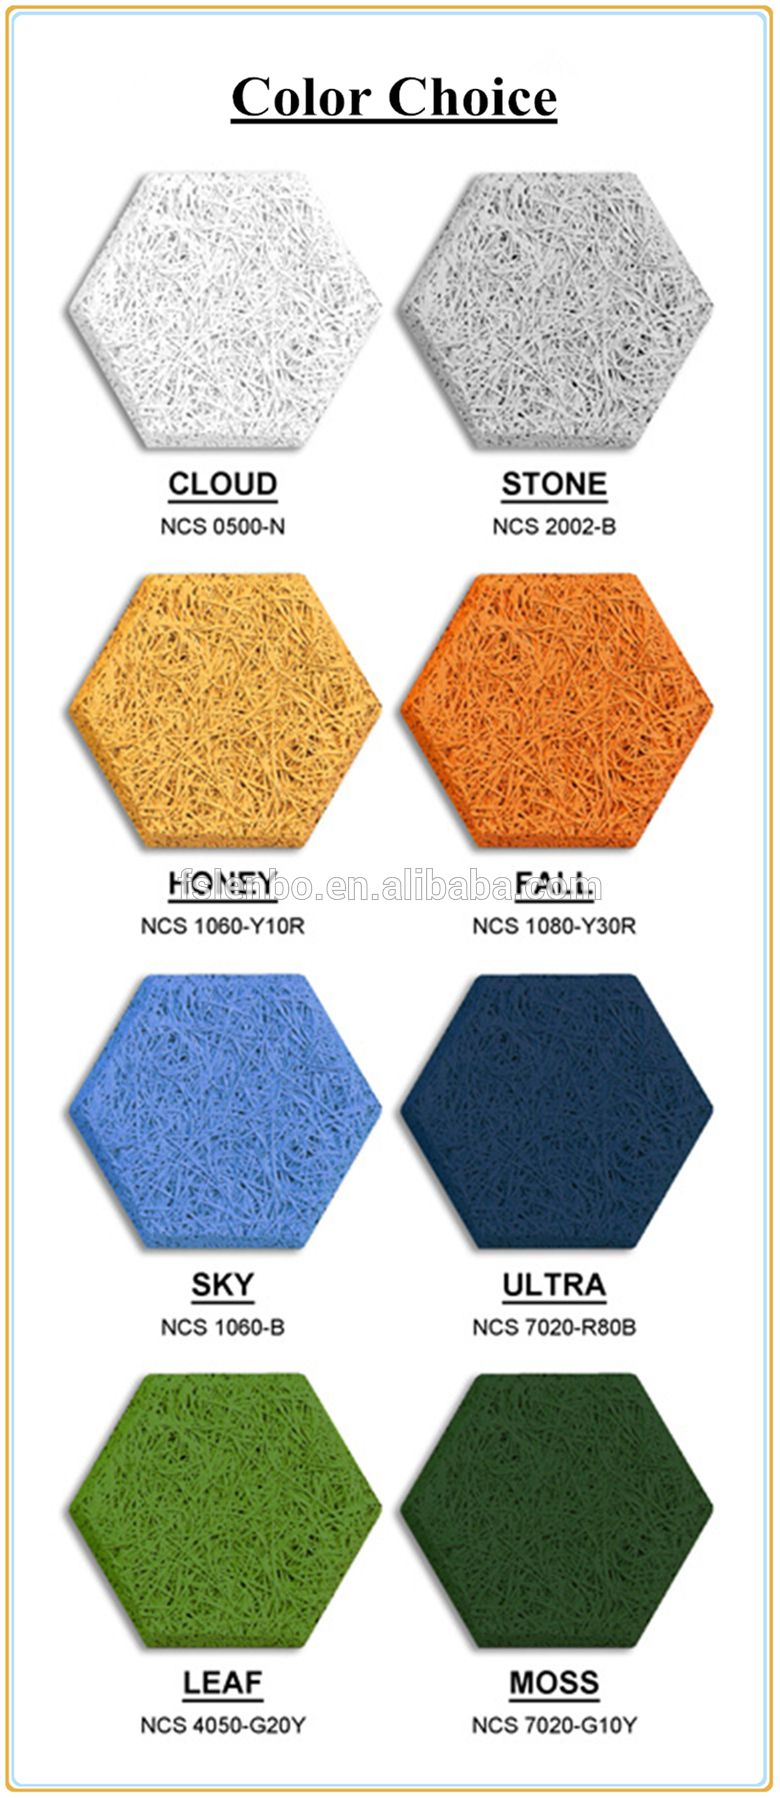 Fire Proof Wood Wool Acoustic Panel Cement Excelsior Board Buy Non Combustible Performance Classa Wood Wool Acoustic Painted Paneling Wall Design Wall Tiles